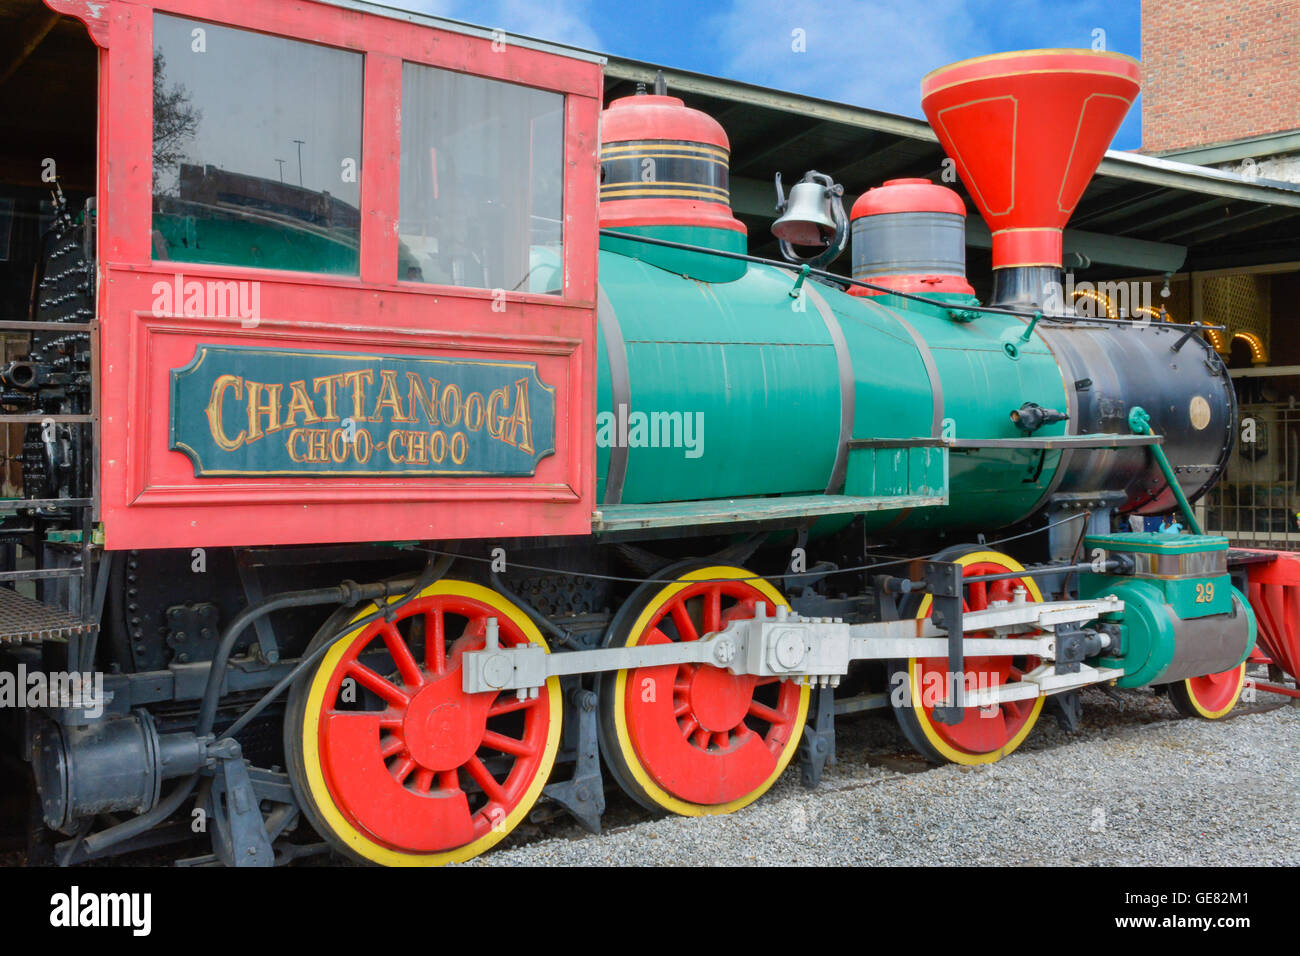 The colorful Chattanooga Choo Choo train engine on the complex grounds of the Chattanooga Choo Choo Hotel in Tennessee - Stock Image